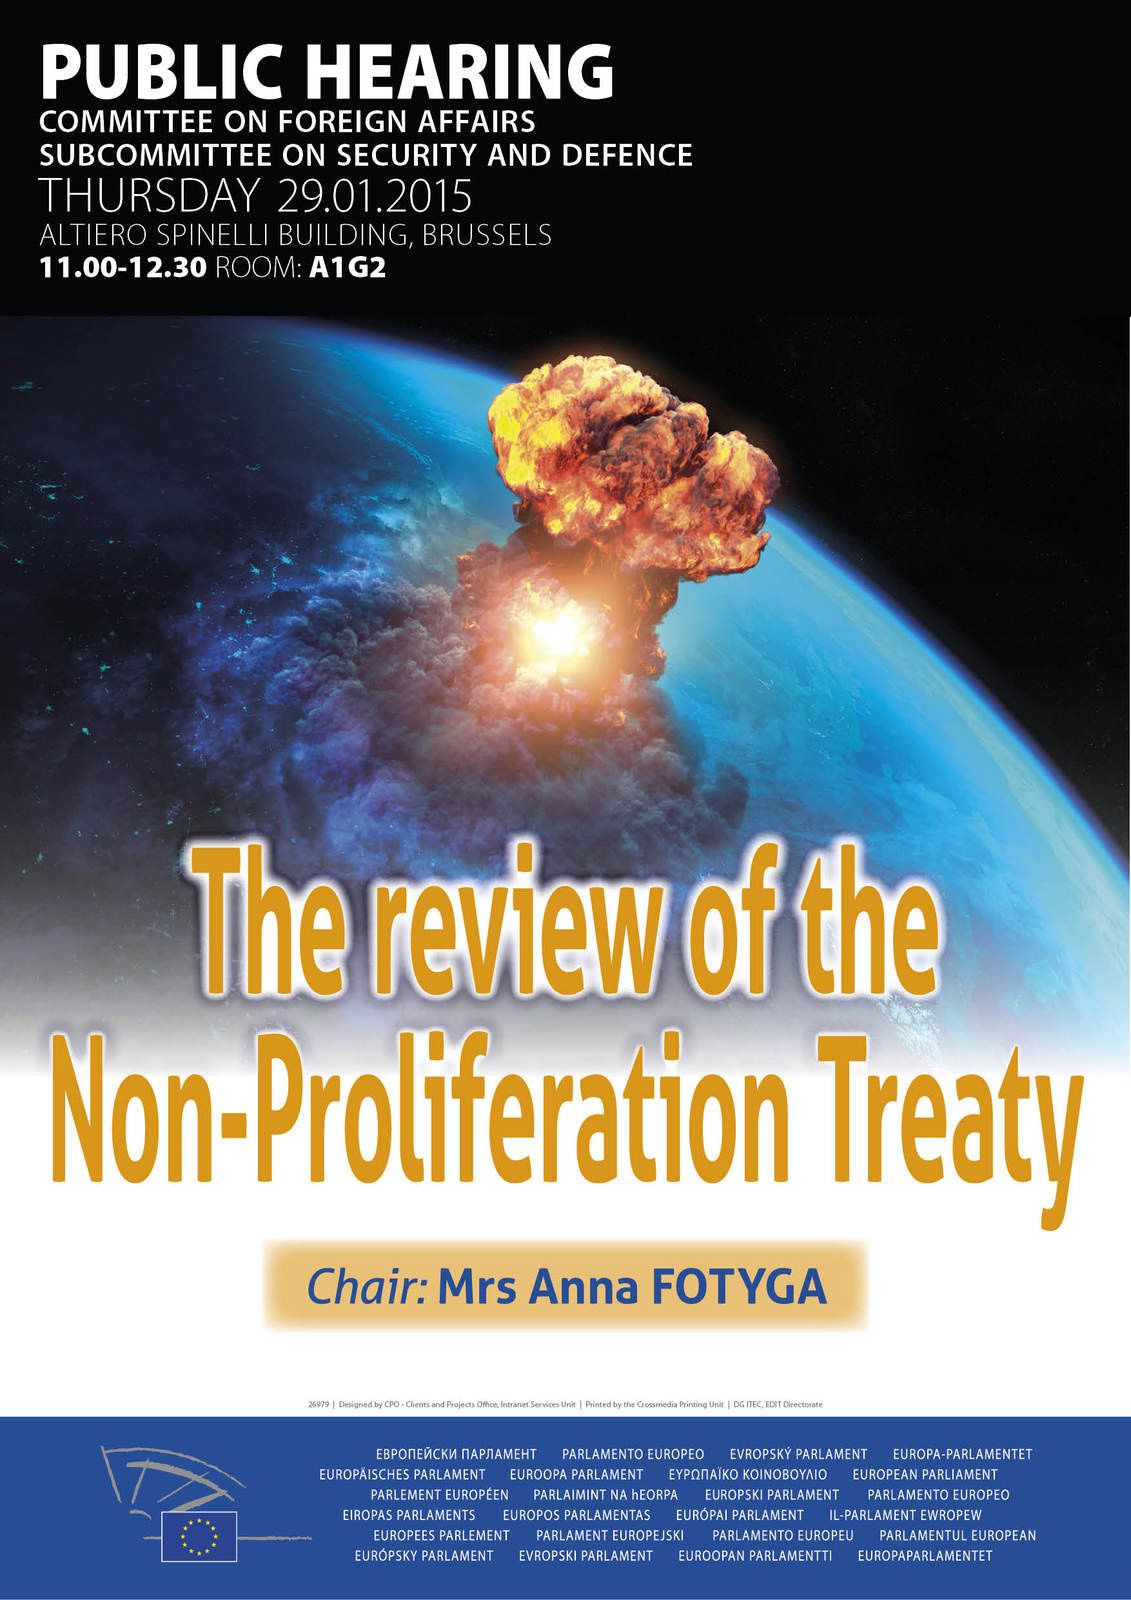 The review of the Non-Proliferation Treaty